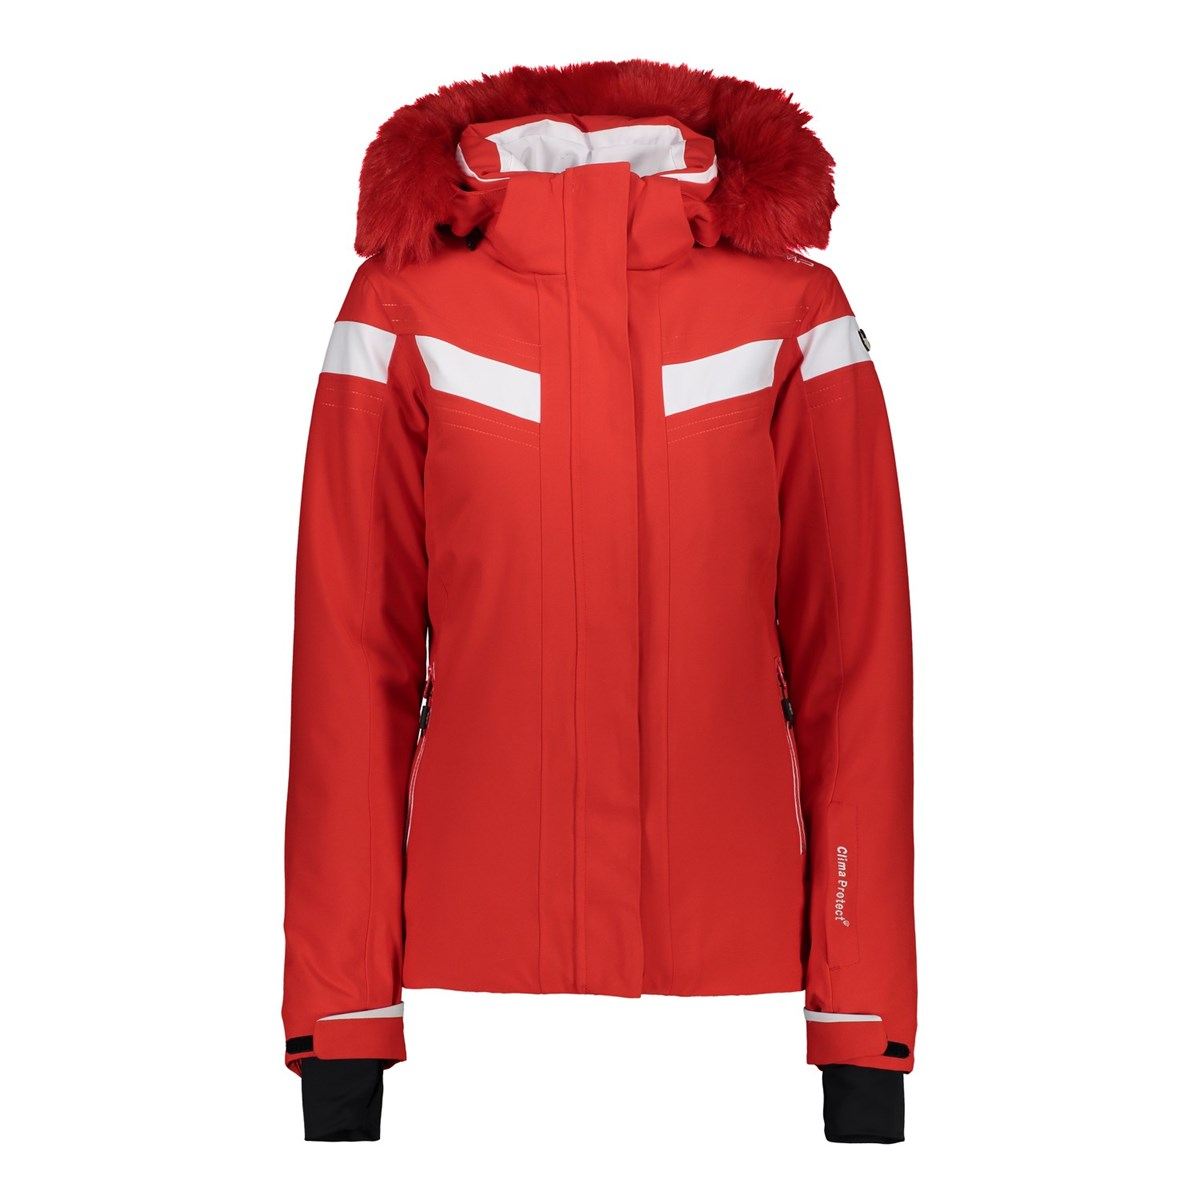 d91b872f25 CMP Beatrix Ladies Ski Jacket 2019 Ferrari Red. 0 (Be the first to add a  review!)